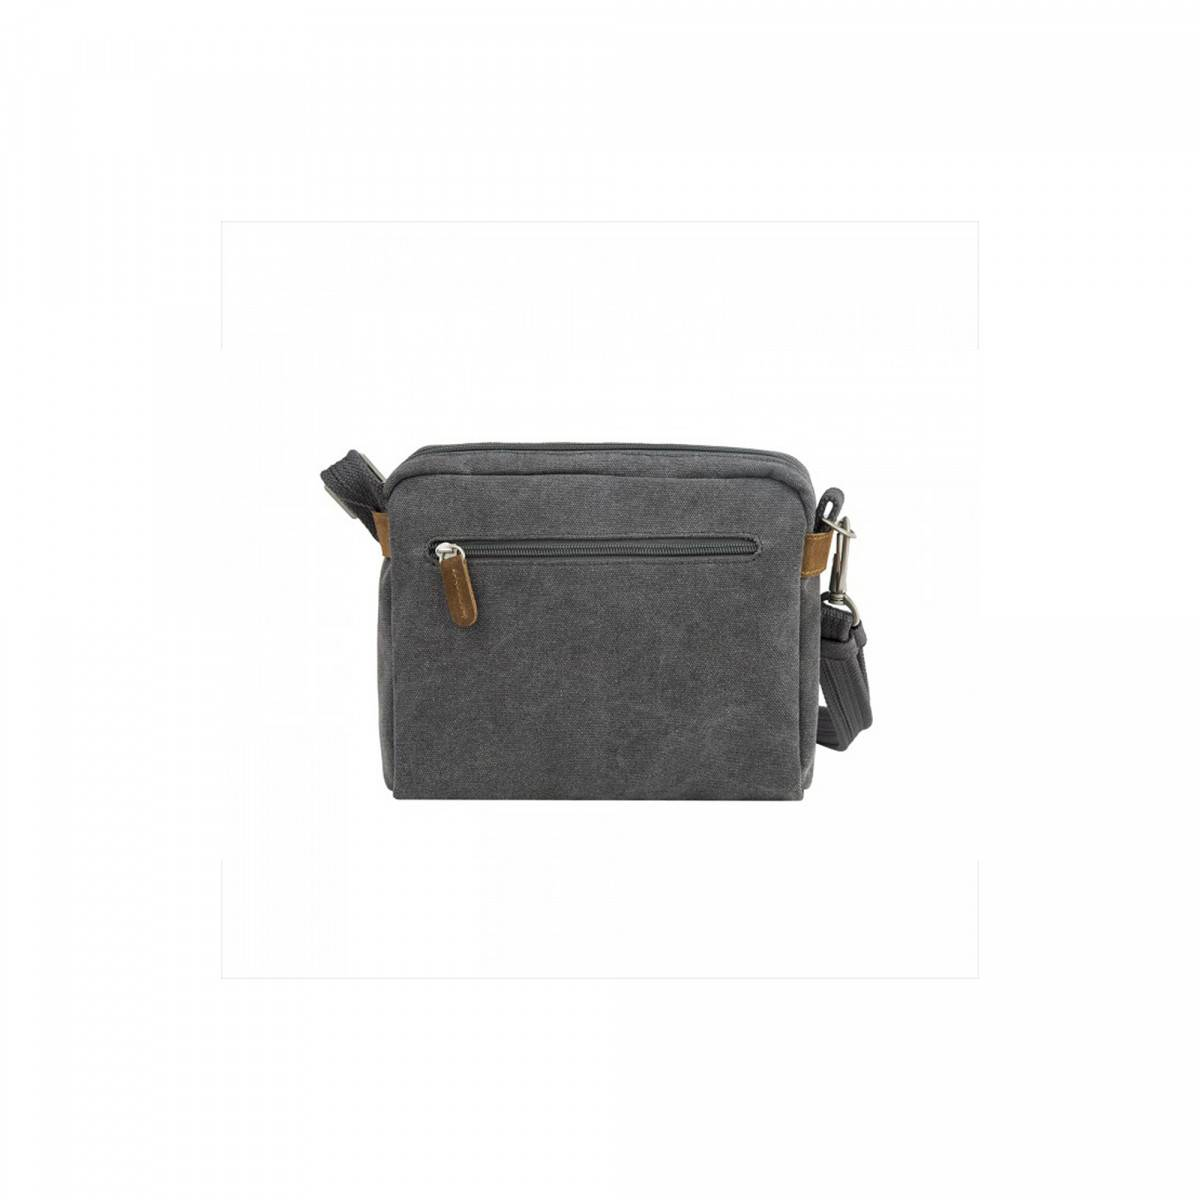 d626b88e633 Travelon Anti-Theft Heritage Crossbody Bag 33071